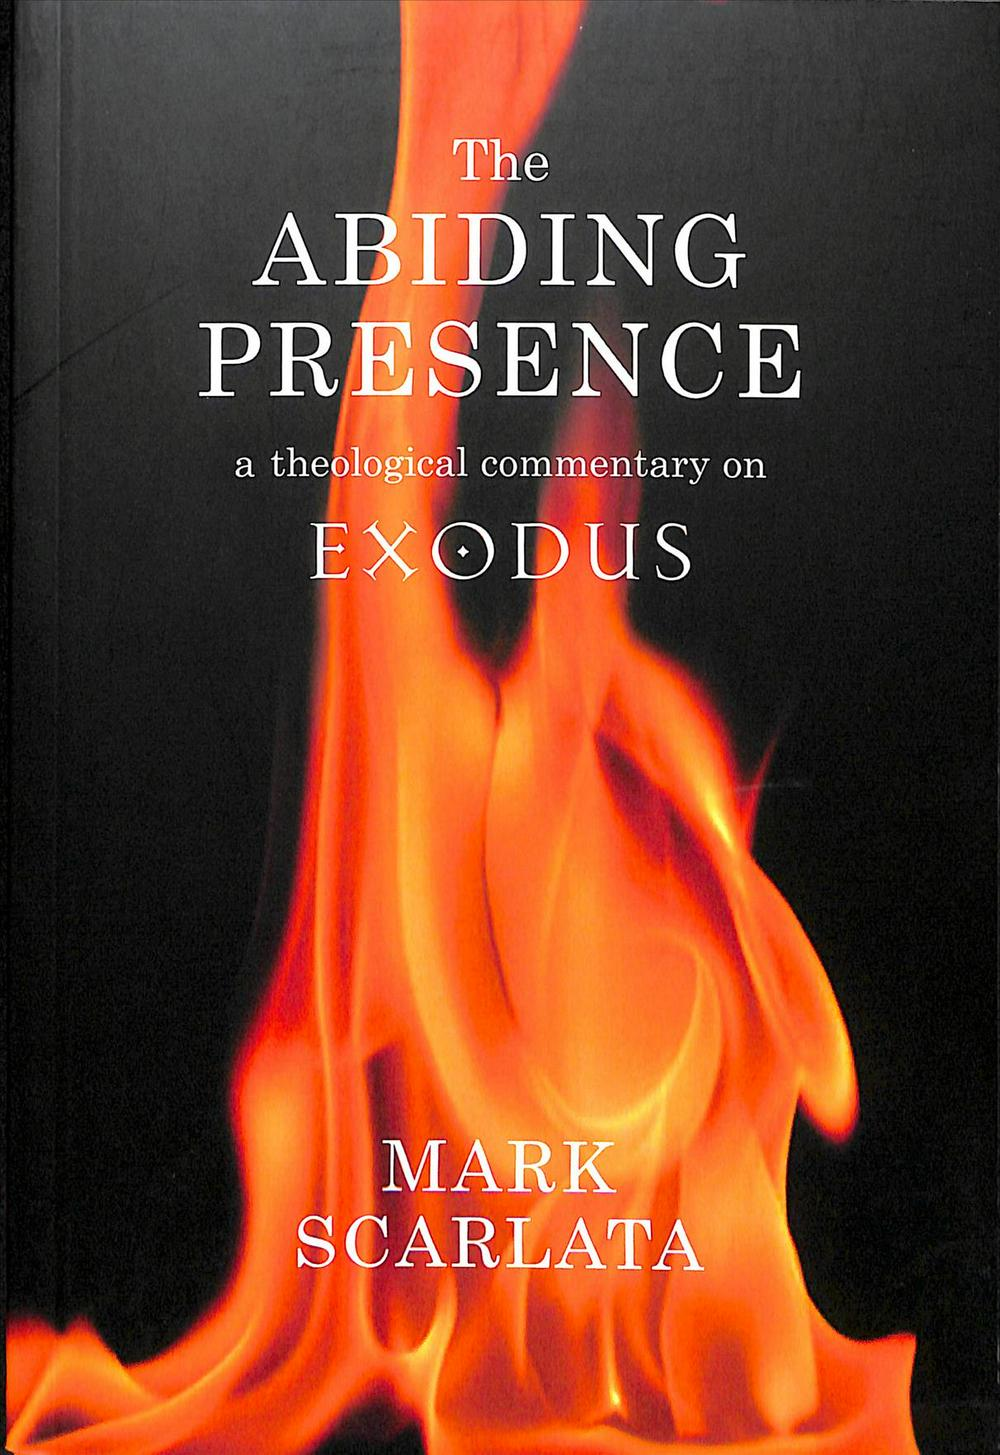 The Abiding Presence: A Theological Commentary on Exodus